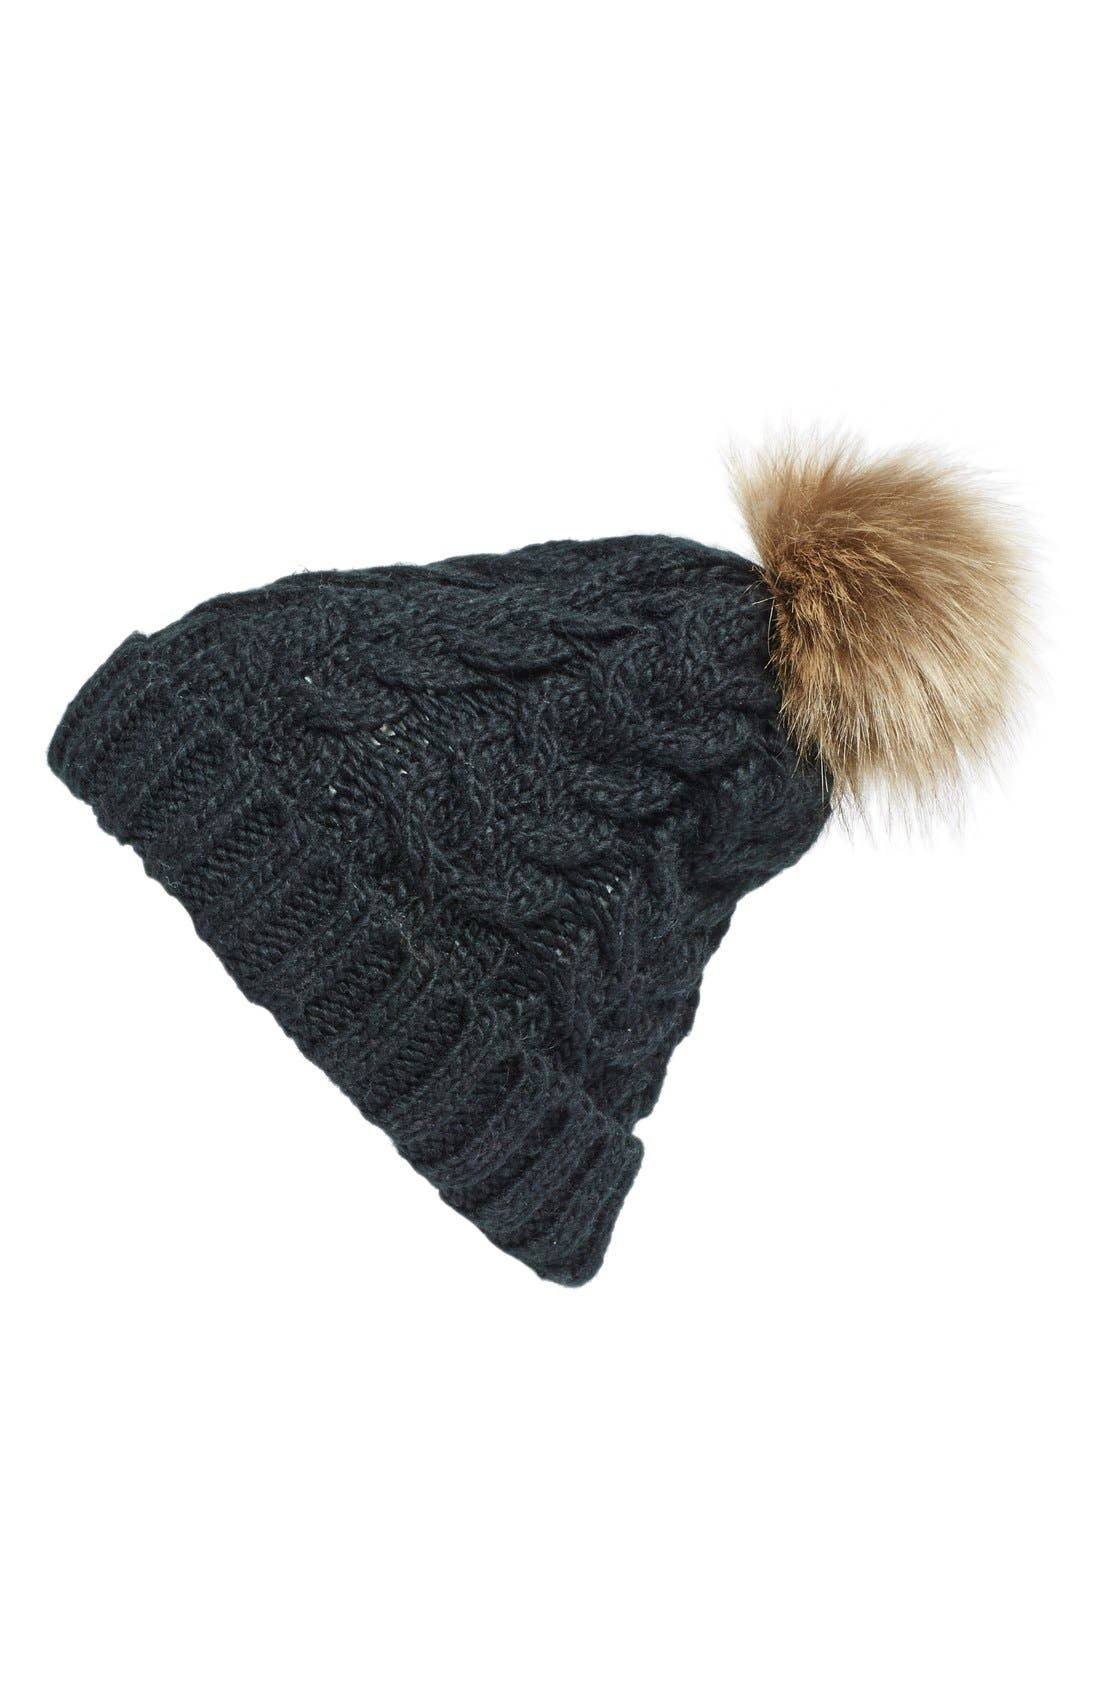 Alternate Image 1 Selected - BP. Knit Beanie with Faux Fur Pompom